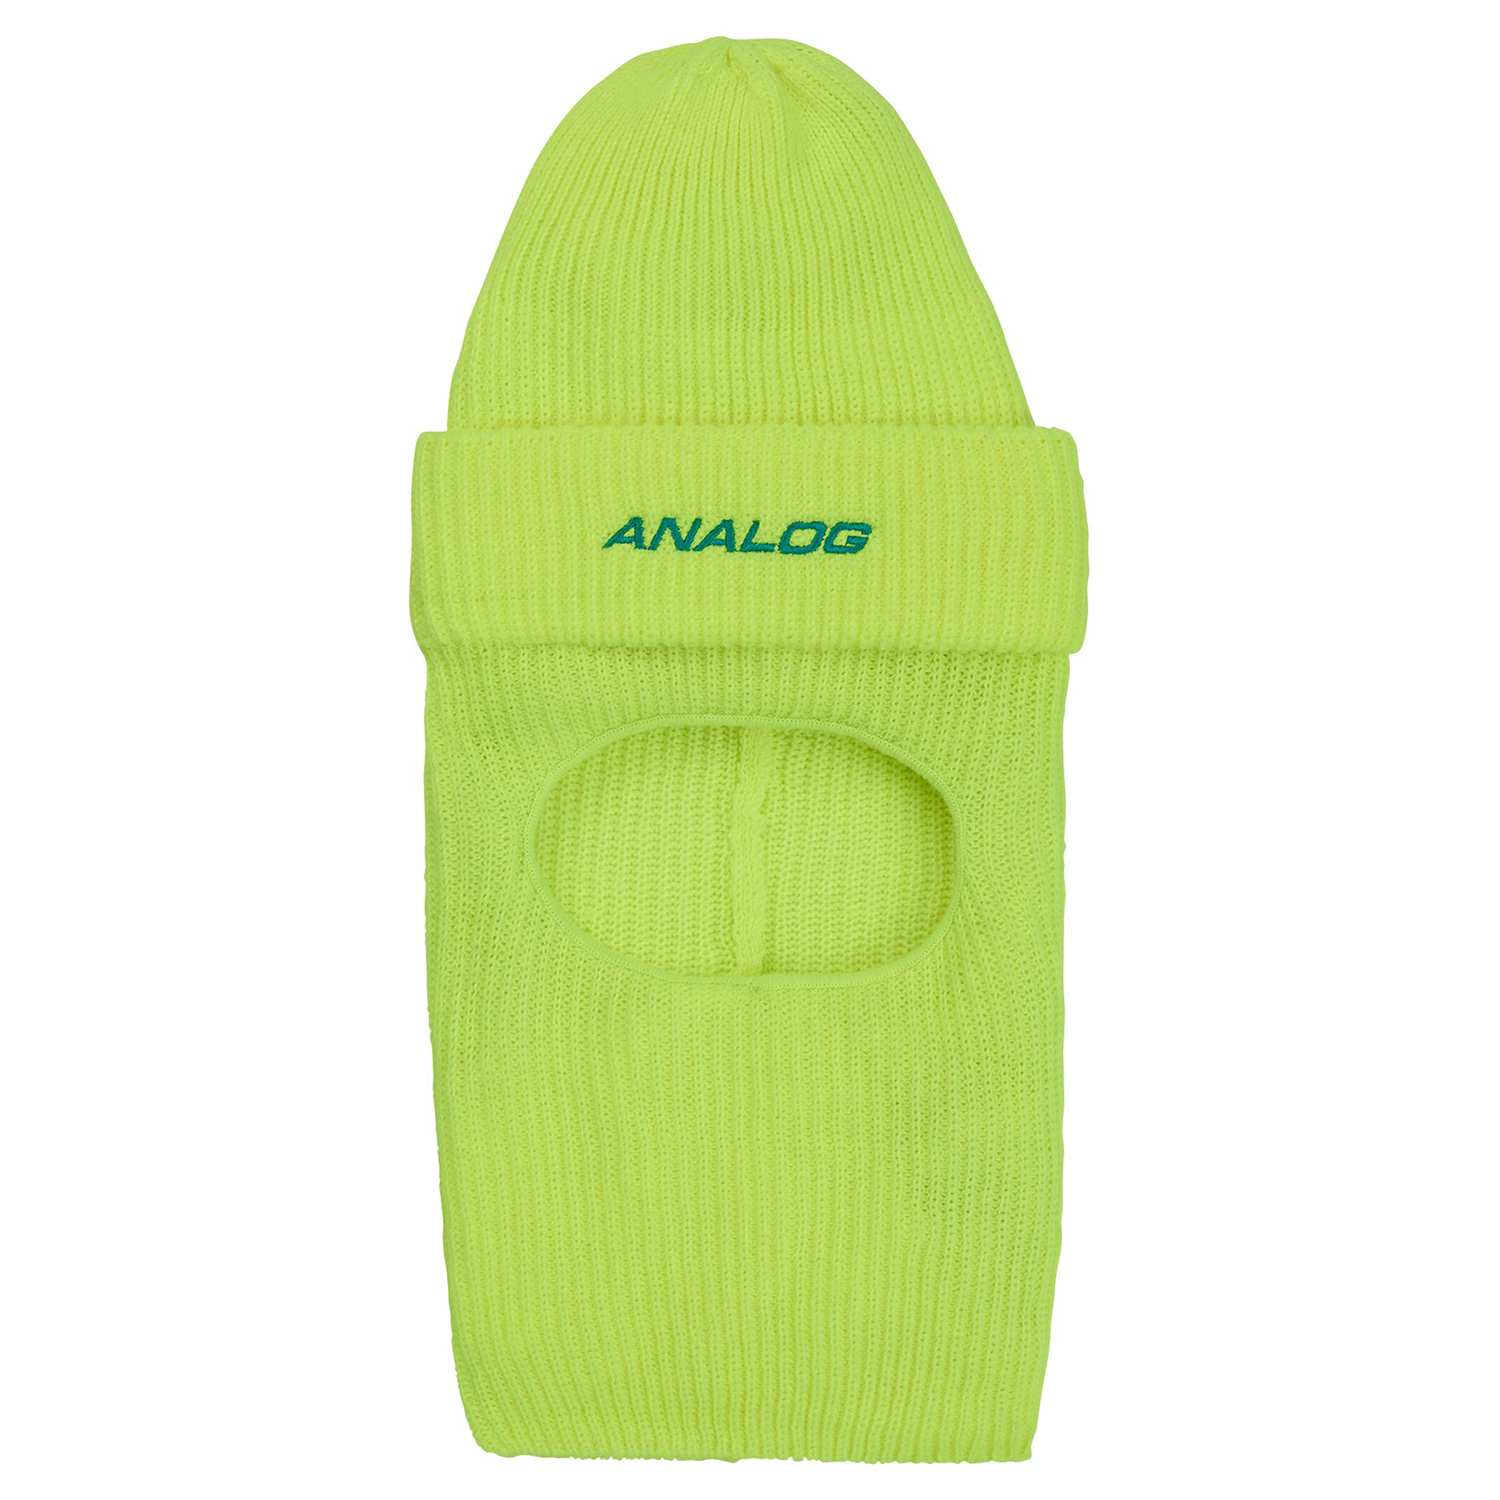 Analog Double D Facemask Beanie High Viz 2020